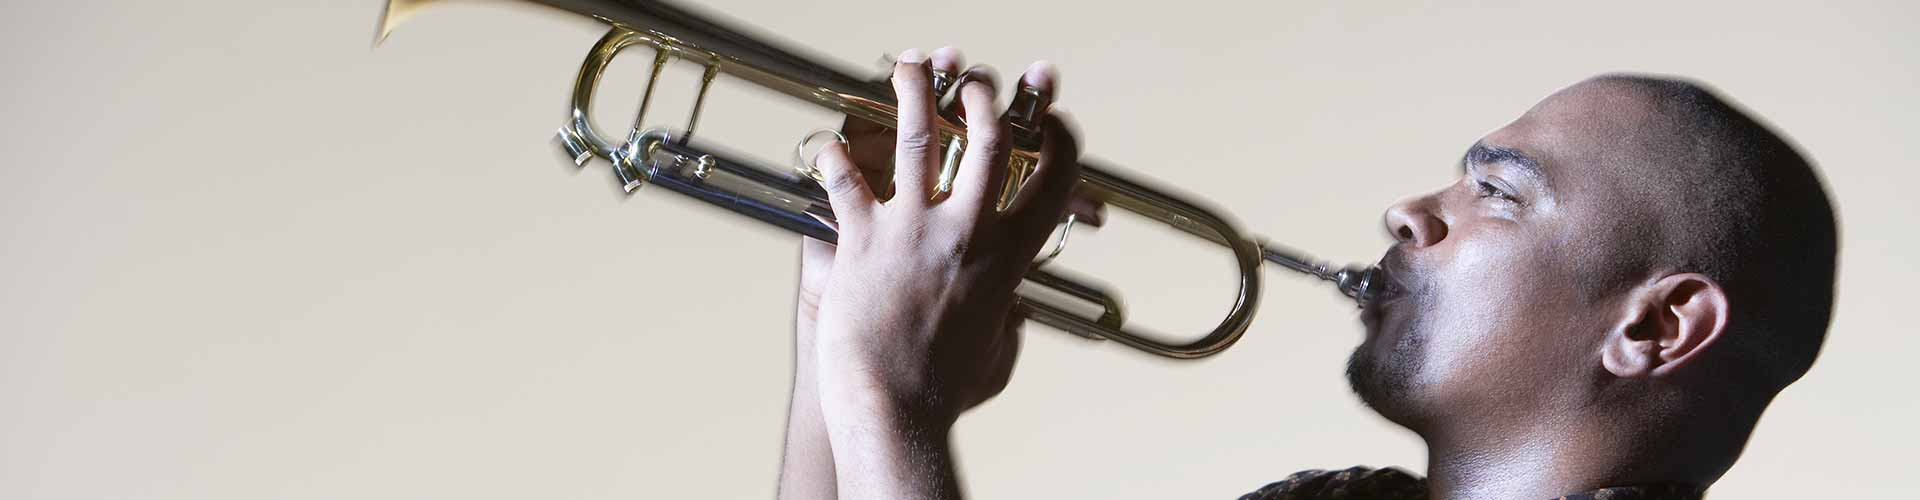 Personal Branding, Self-Promotion and Blowing Your Own Trumpet